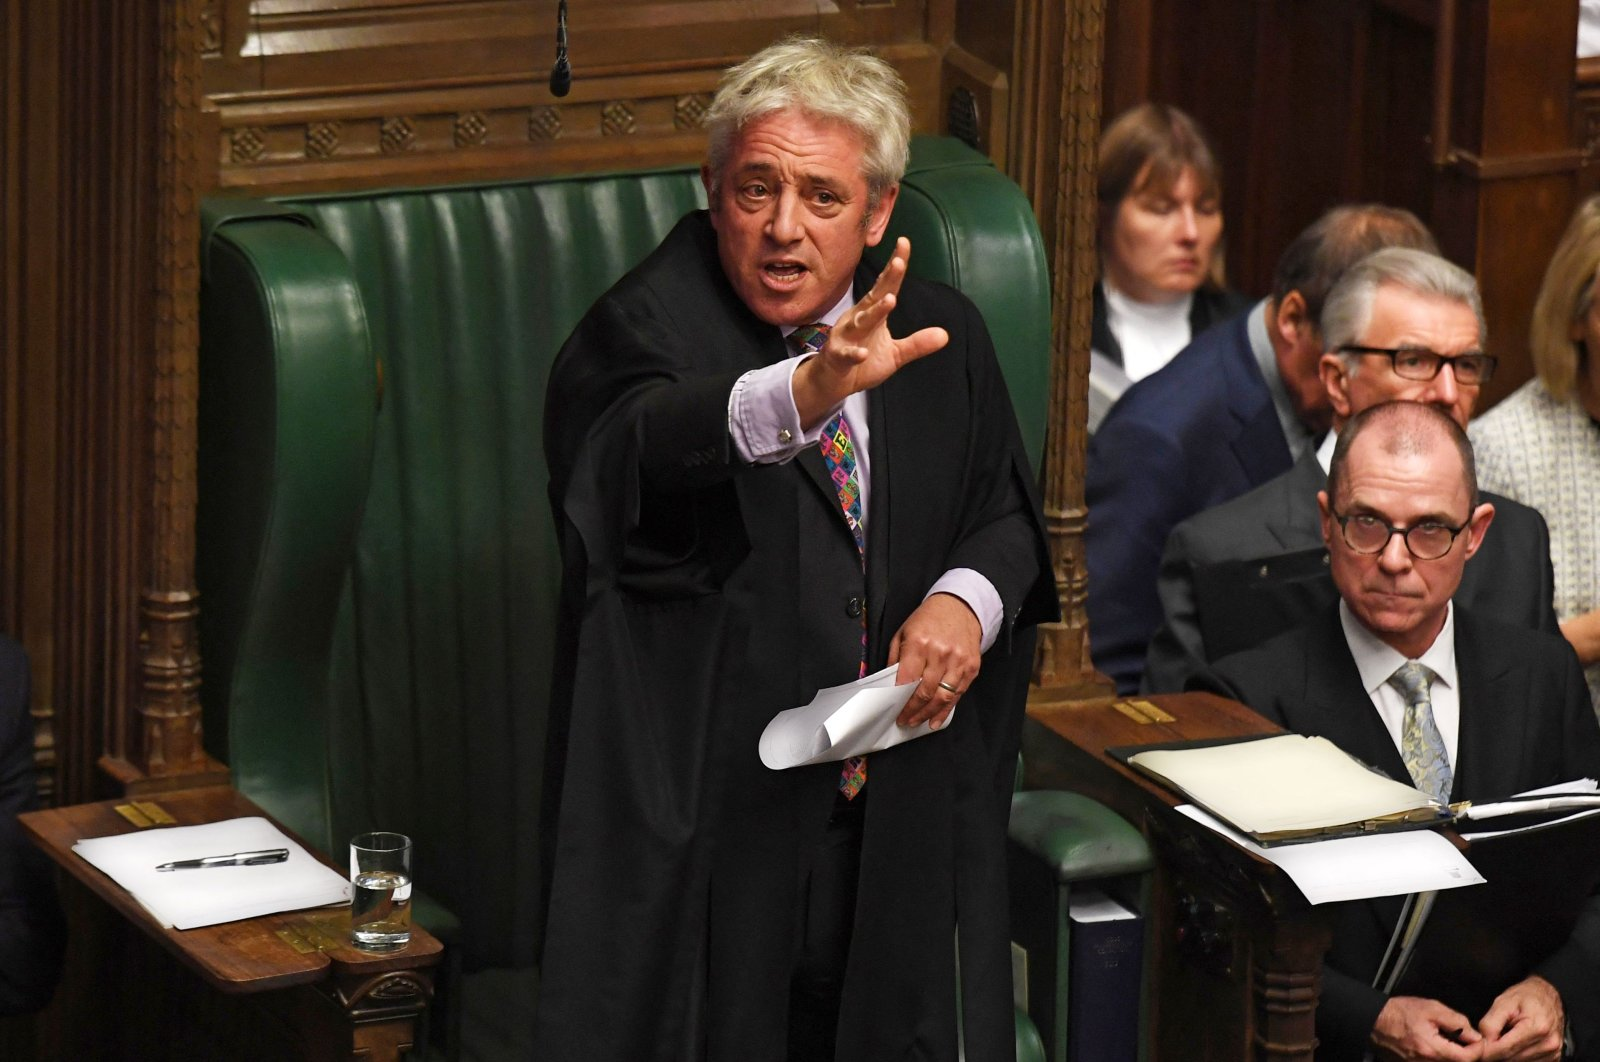 Former U.K. Parliament Speaker John Bercow speaks in the House of Commons in London on the European Union (EU) Withdrawal Act 2018 Motion, London, U.K., Oct. 21, 2019. (Photo by Jessica Taylor/U.K. Parliament via AFP)